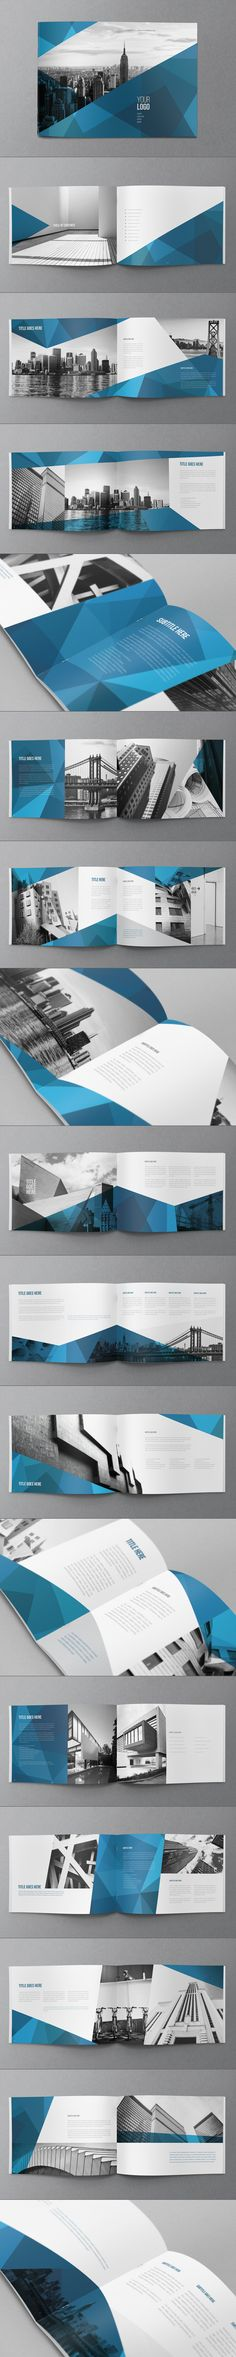 Abstract Architecture Brochure. Download here: http://graphicriver.net/item/abstract-architecture-brochure/7385718?ref=abradesign #design #brochure